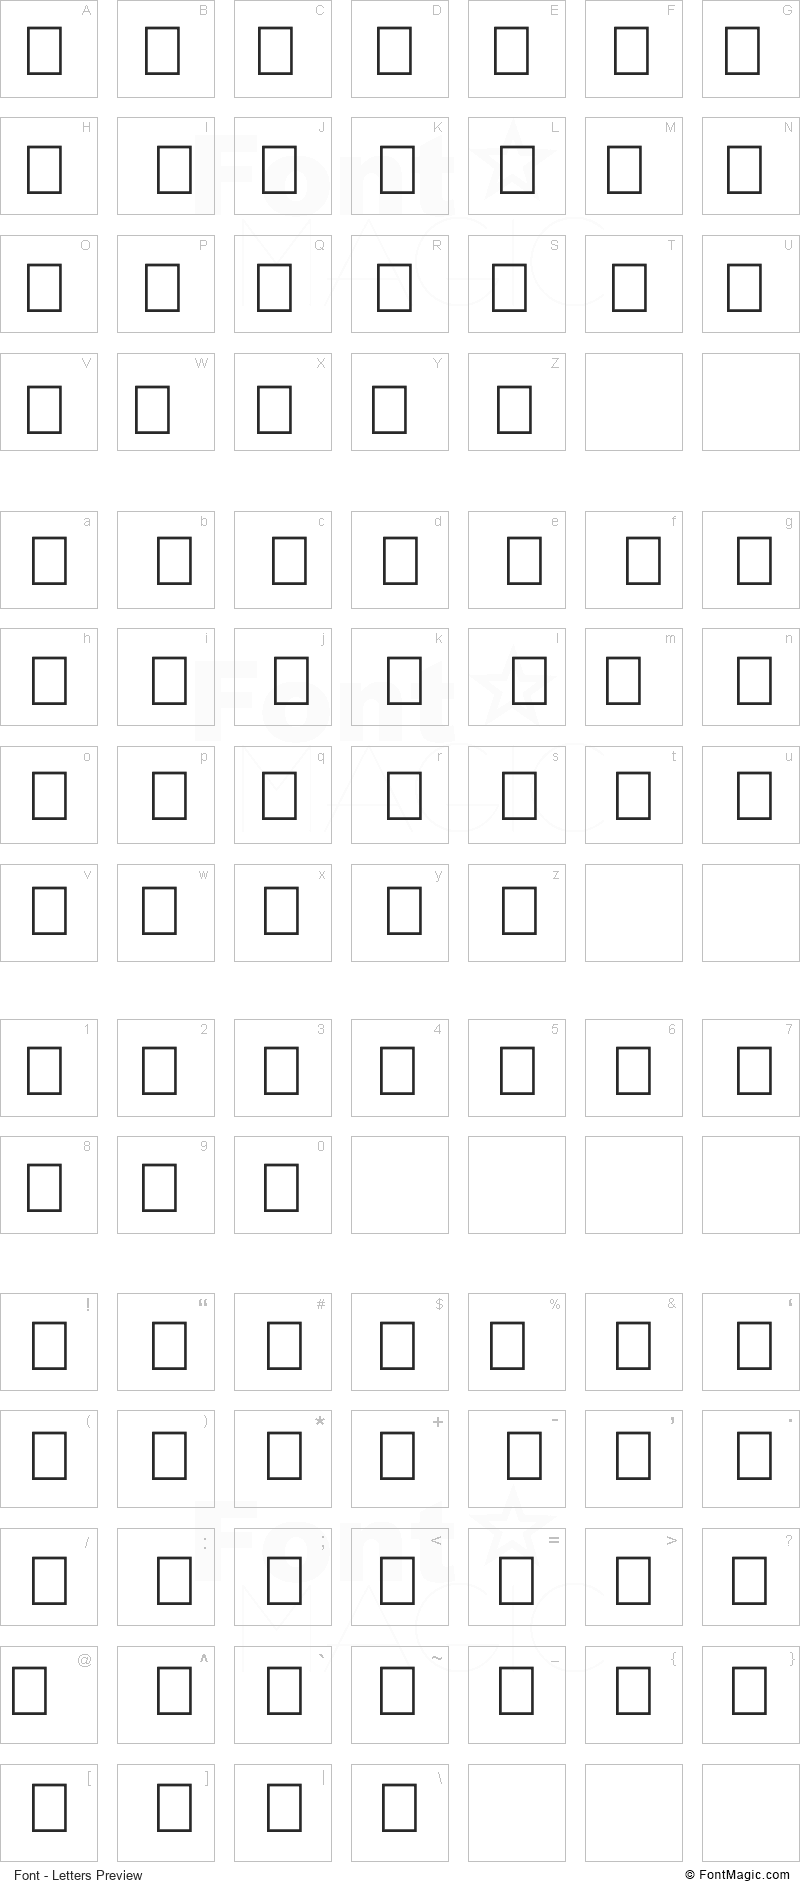 Goodjean Font - All Latters Preview Chart